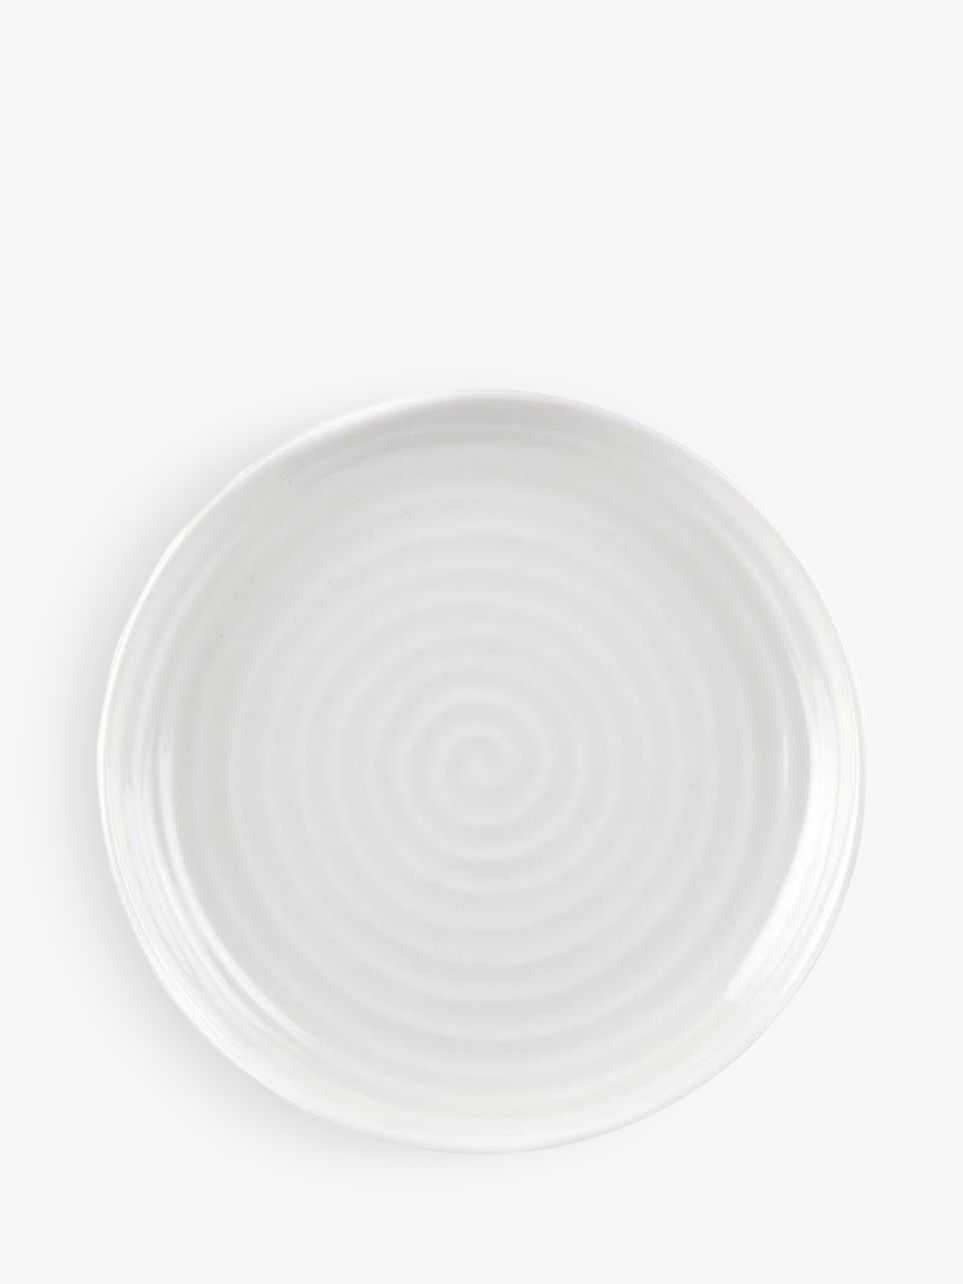 Sophie Conran Sophie Conran for Portmeirion 11.5cm Coupe Plate